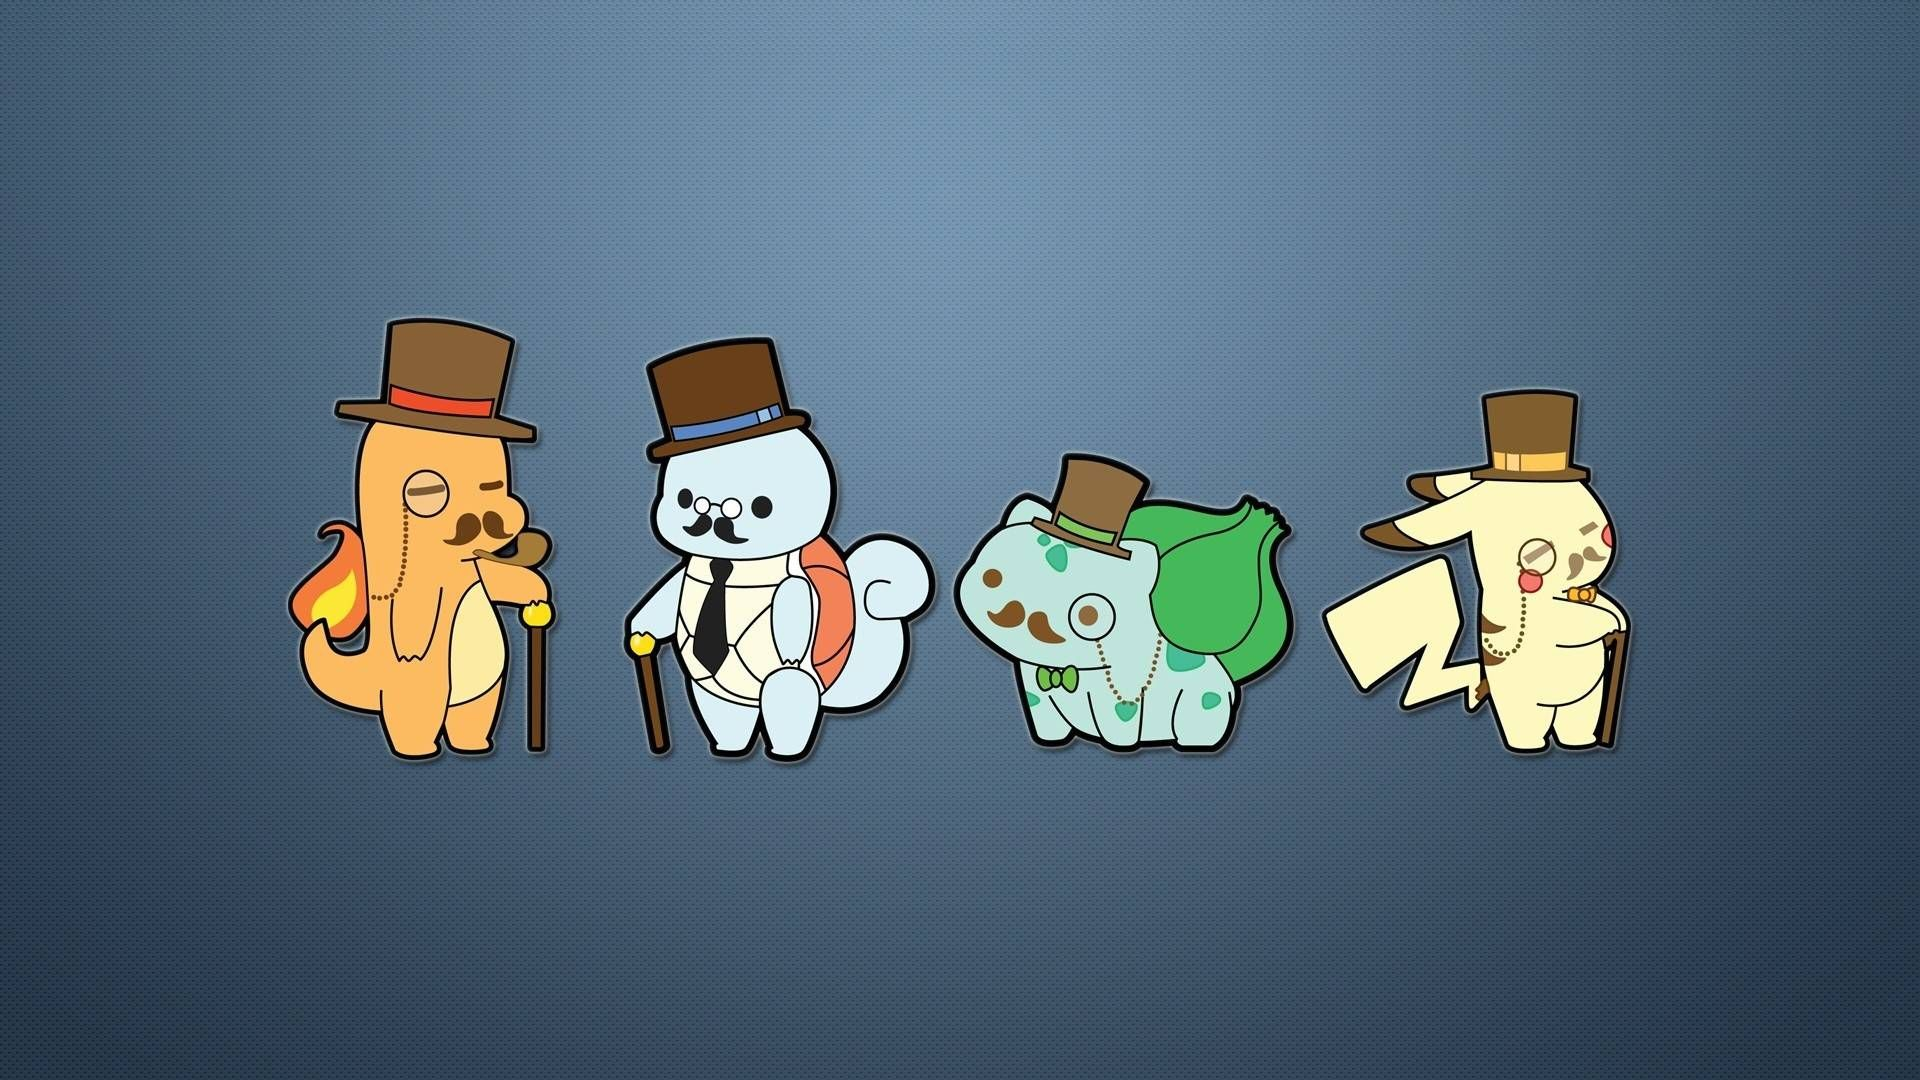 Funny Pokemon Wallpapers Wallpaper Cave Funny